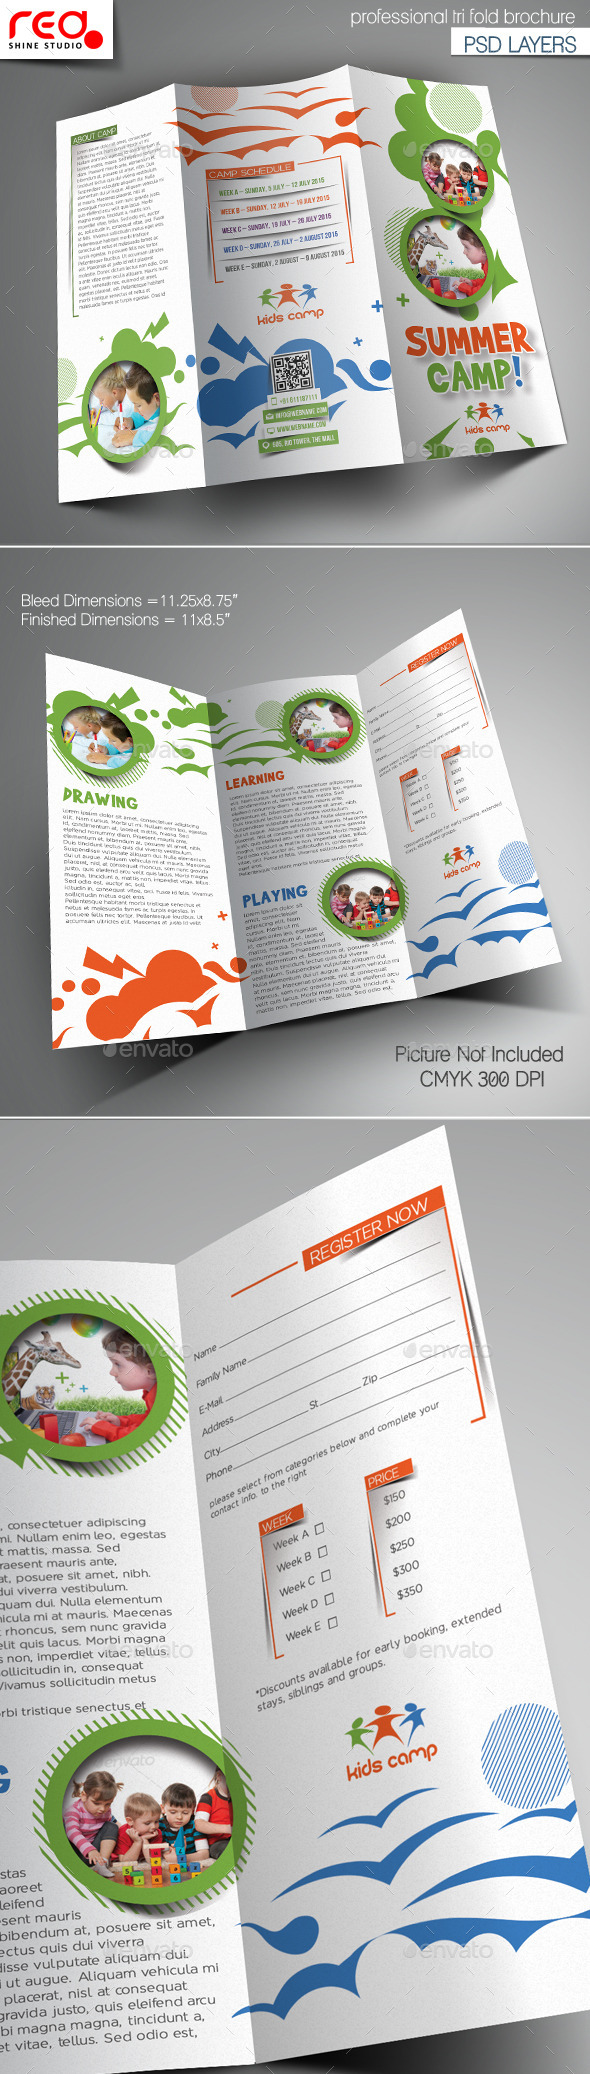 Summer Camp Trifold Brochure Template - Brochures Print Templates